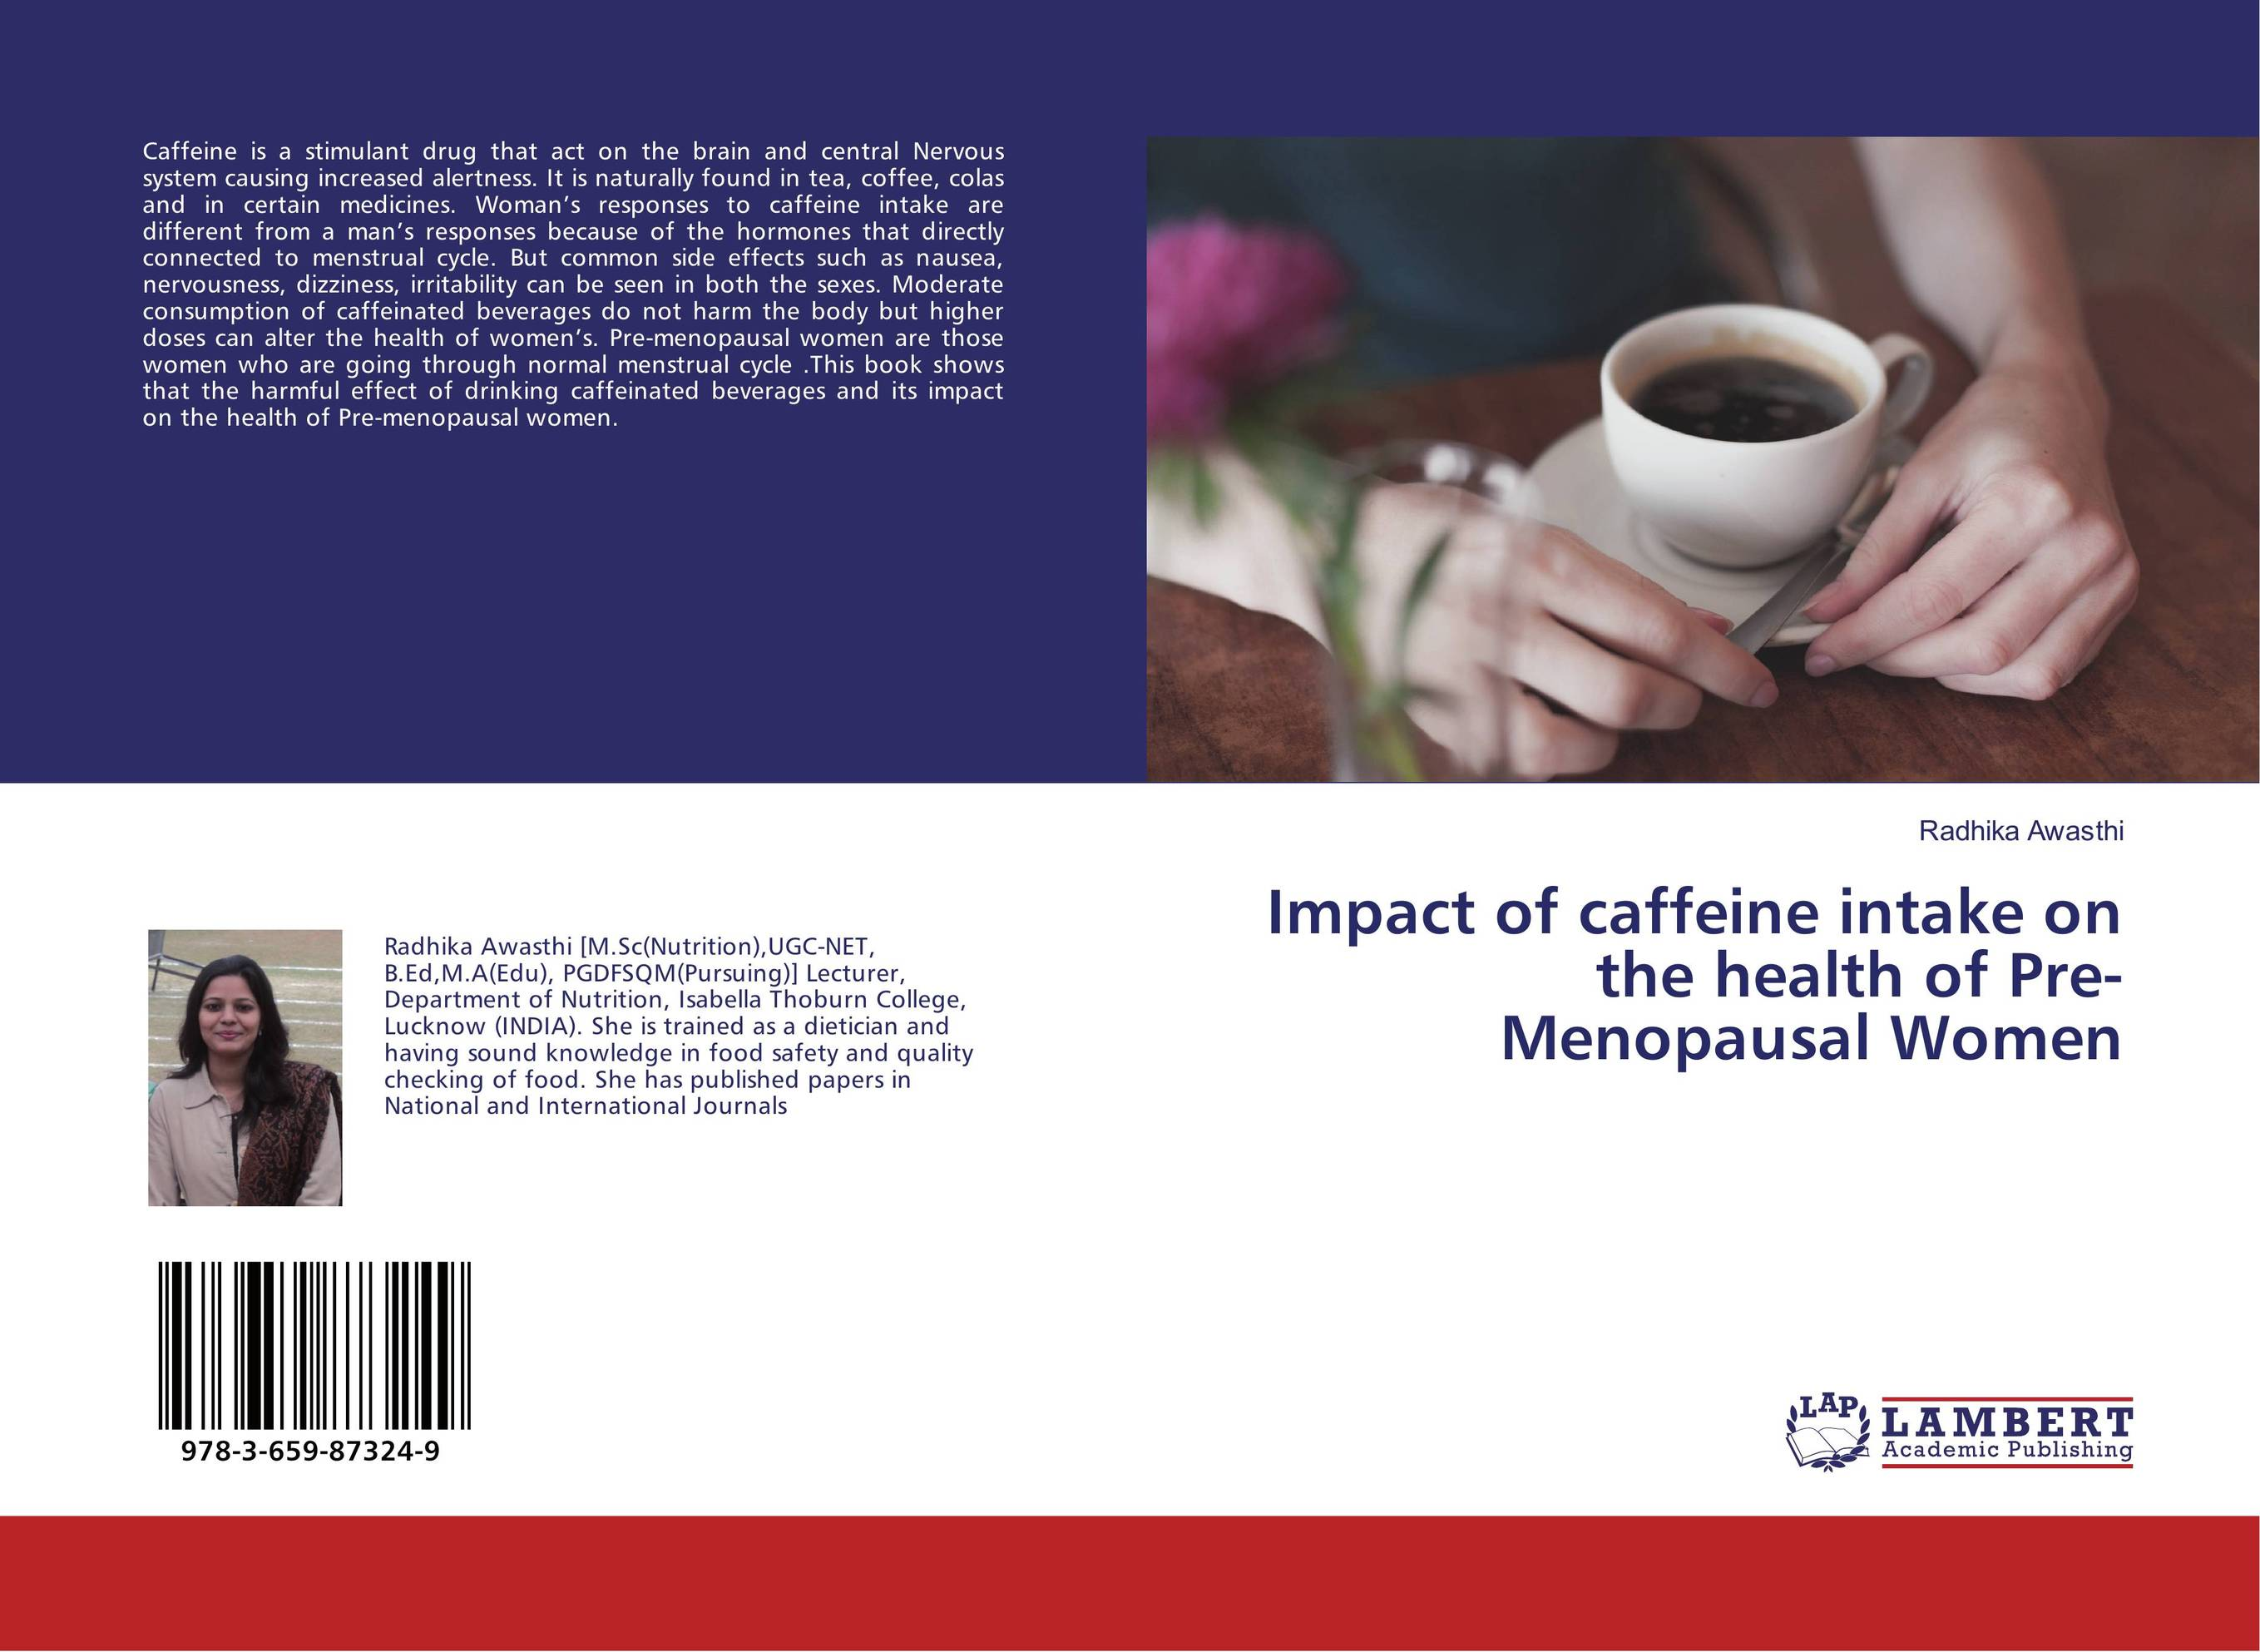 Impact of caffeine intake on the health of Pre-Menopausal Women pathways to college the impact of inventive pre collegiate programs